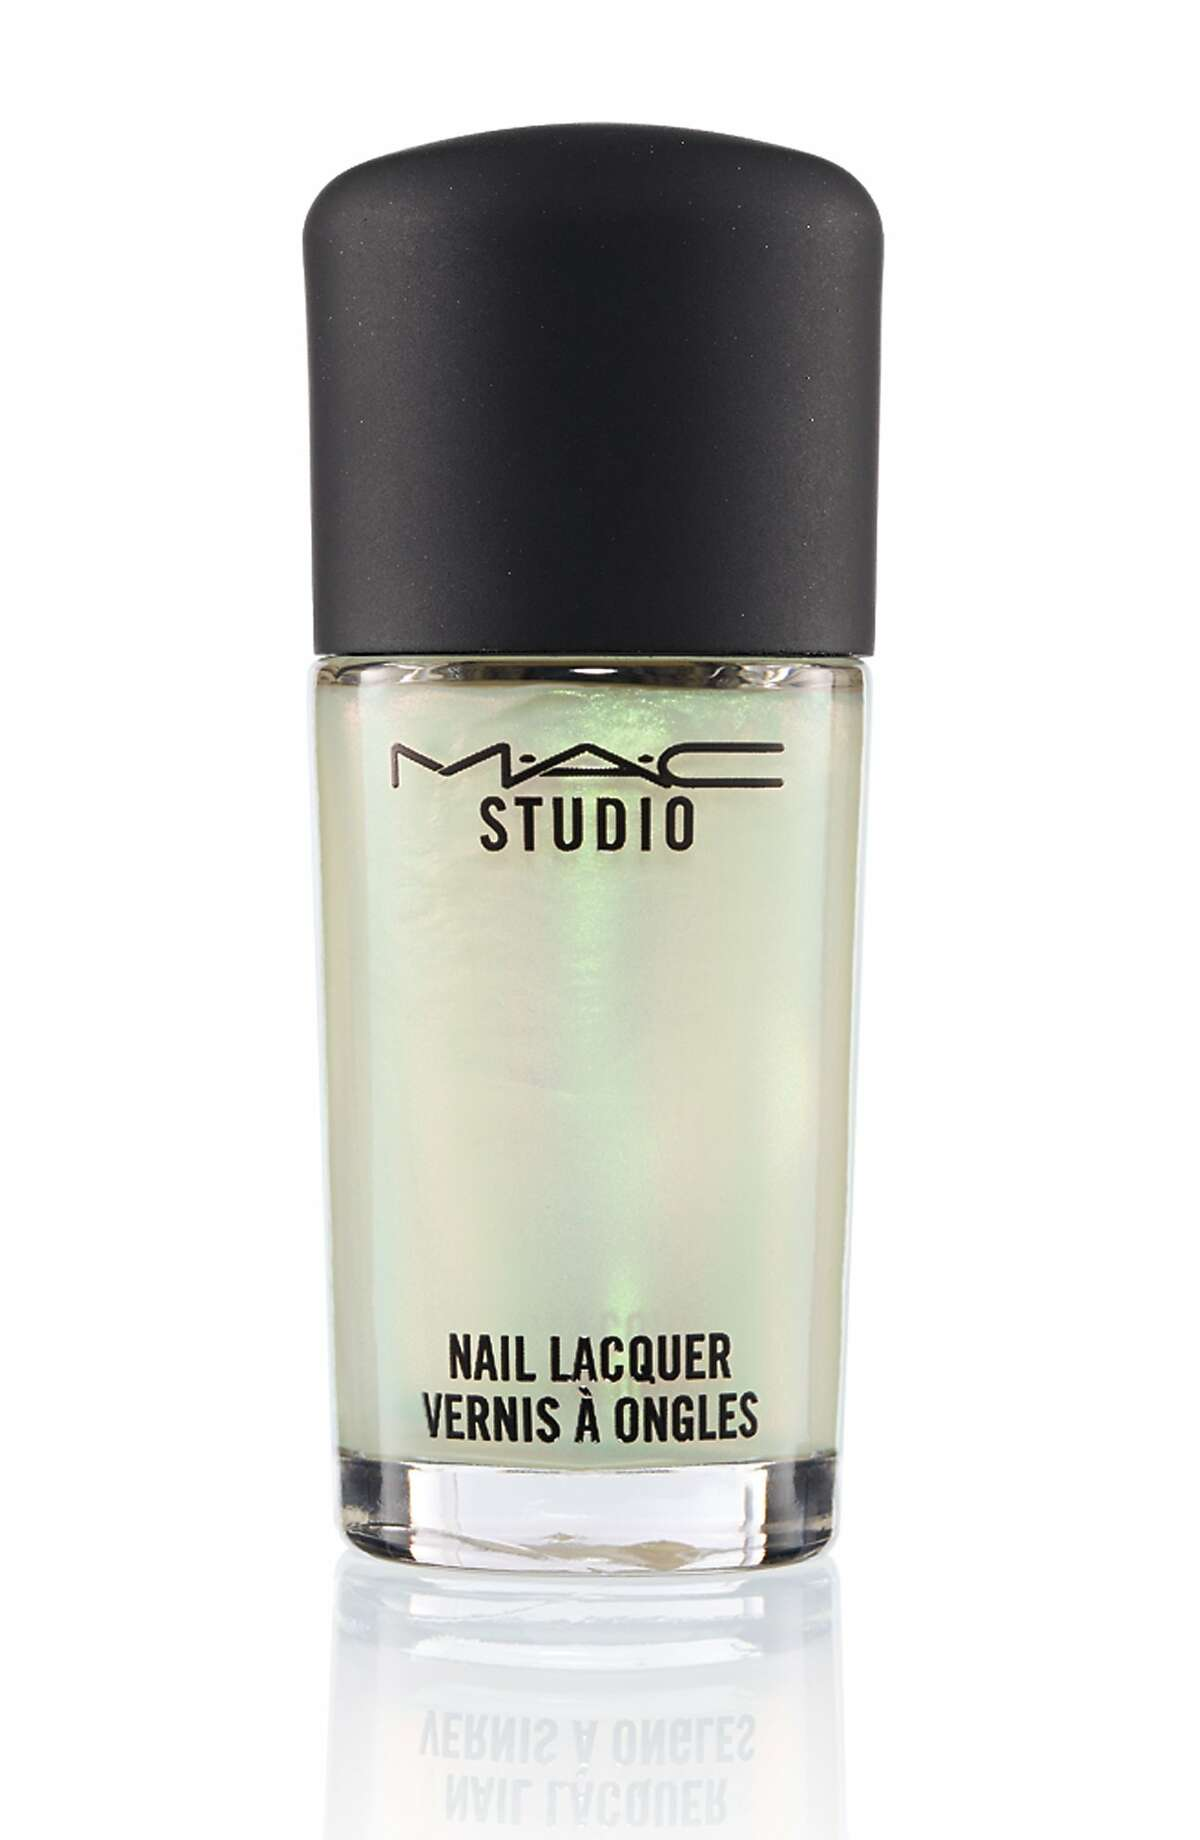 MAC Studio Nail Lacquer Liquid Pigment in Green Pearl, $12, MAC (45 Powell St. and other locations)